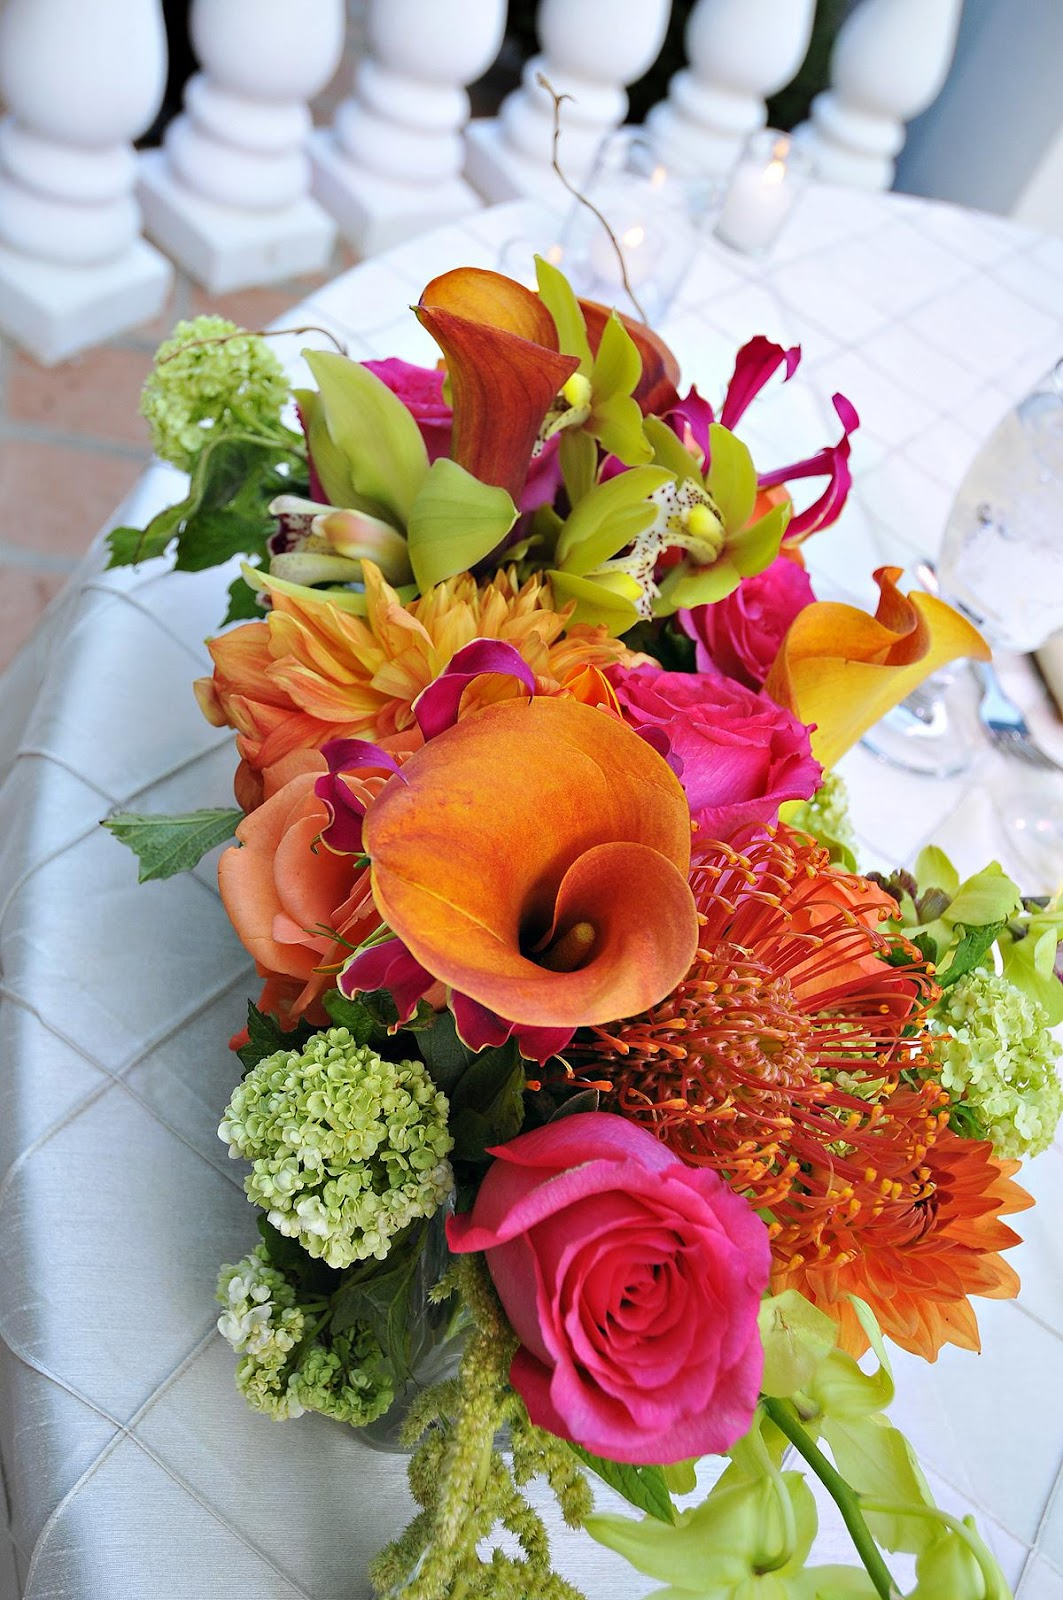 Flowers for LDS weddings